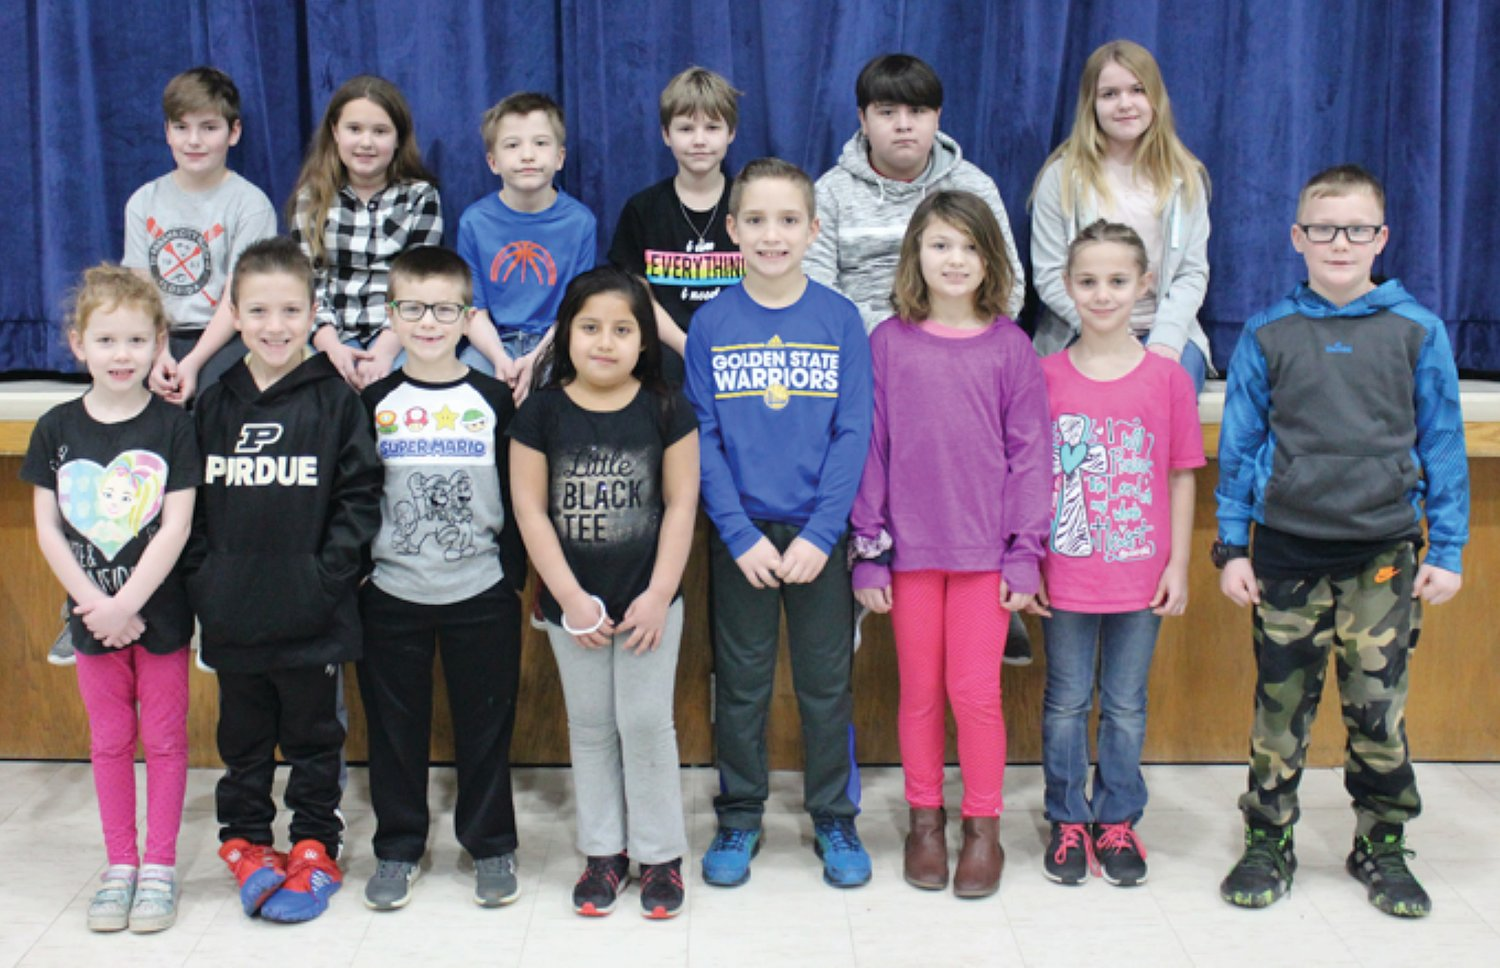 Southeast Fountain Elementary Students of the Month for December 2019 are, from left, Ava Ogle, Ty Ashwill, Douglas Webb, Dania Payes Jimenez, Drew Foxworthy, Kadence LaGue, Zoe Wildman and Austin Blankenship; and back row, Pepper Thompson, Annibella Mathews, Jeramiah Morris, Jolee Snelling, Angelo Viveros and Morgan Lewis.